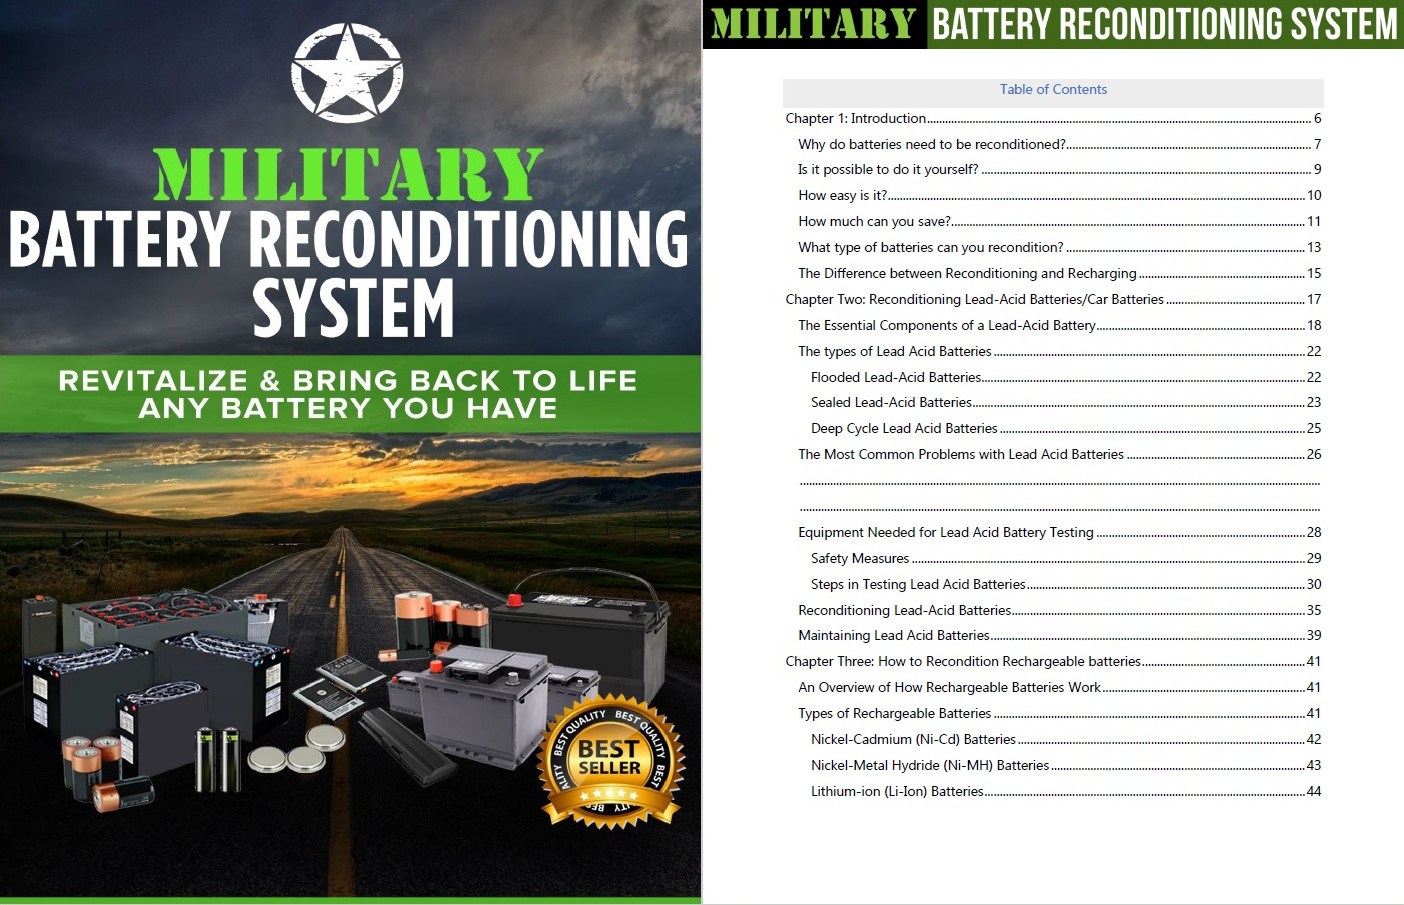 military battery reconditioning content page